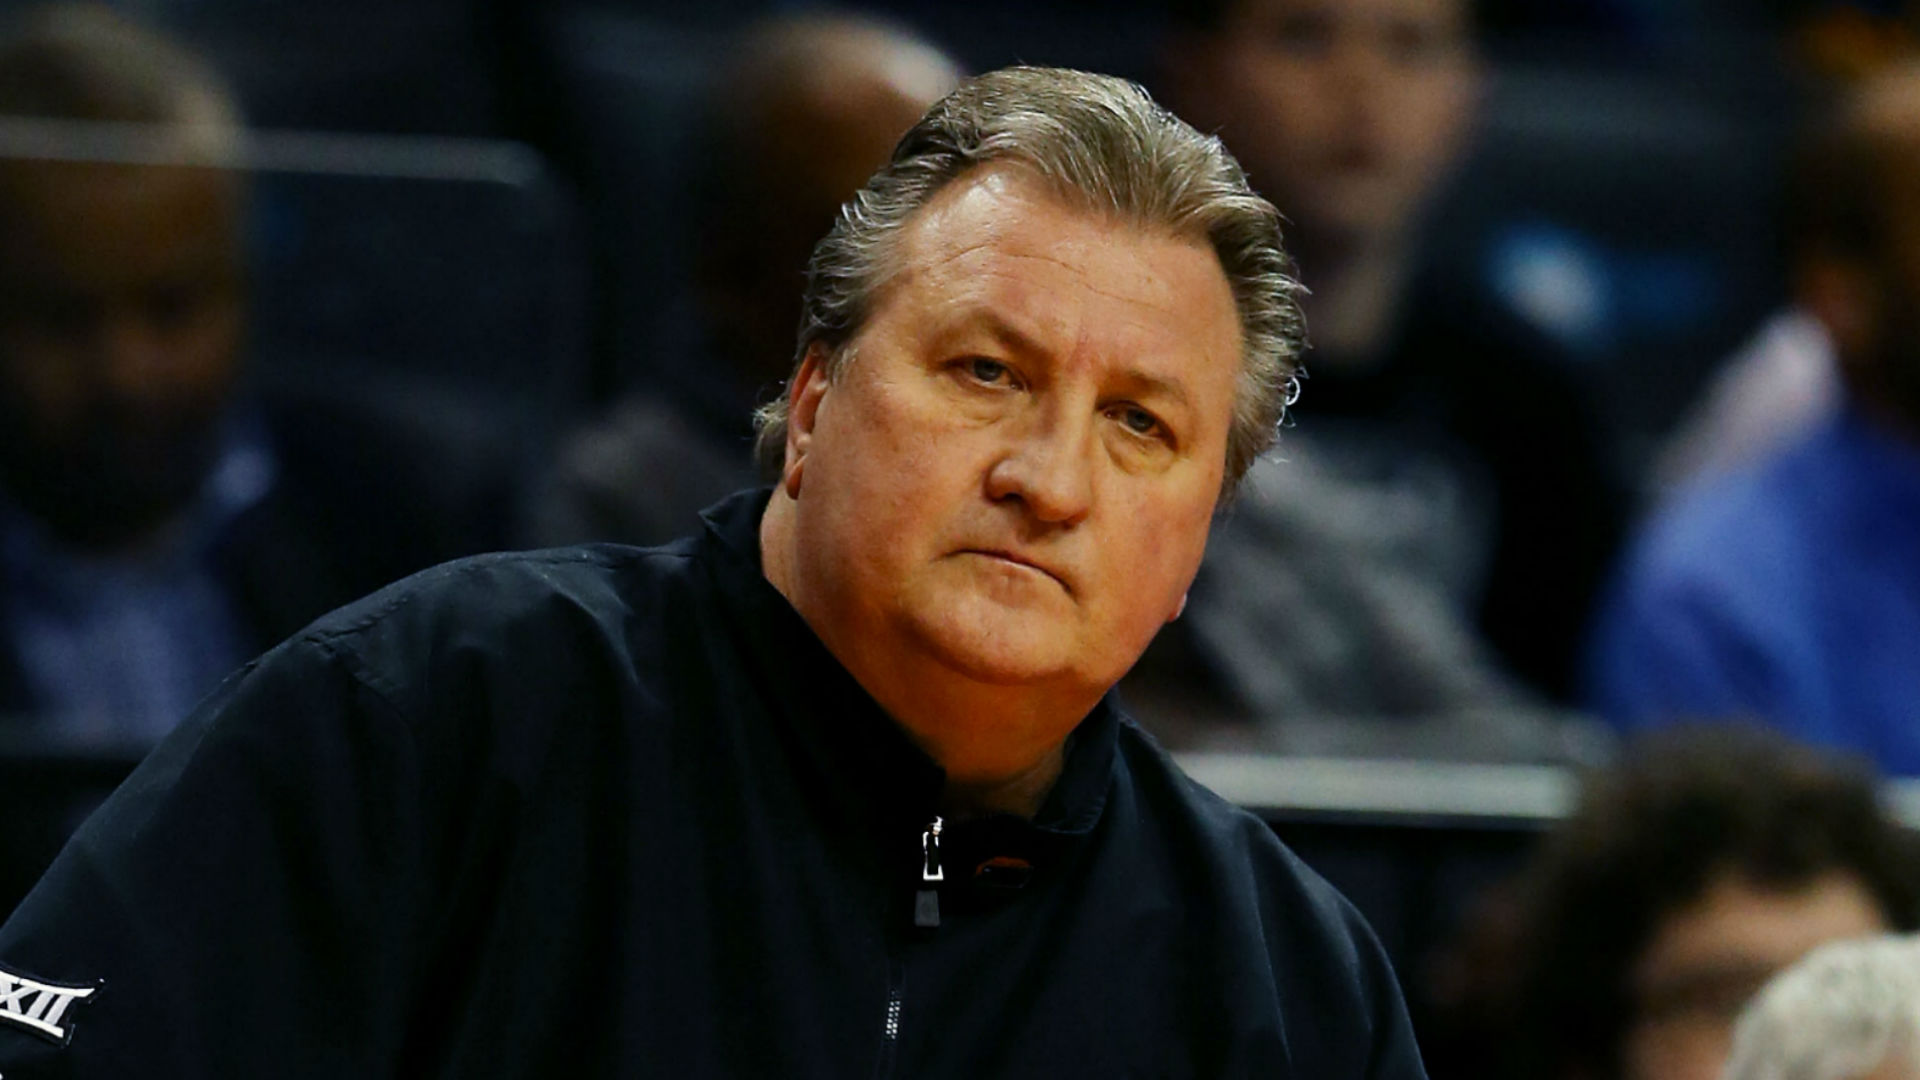 West Virginia dismisses two starters for violating 'athletic department policies'